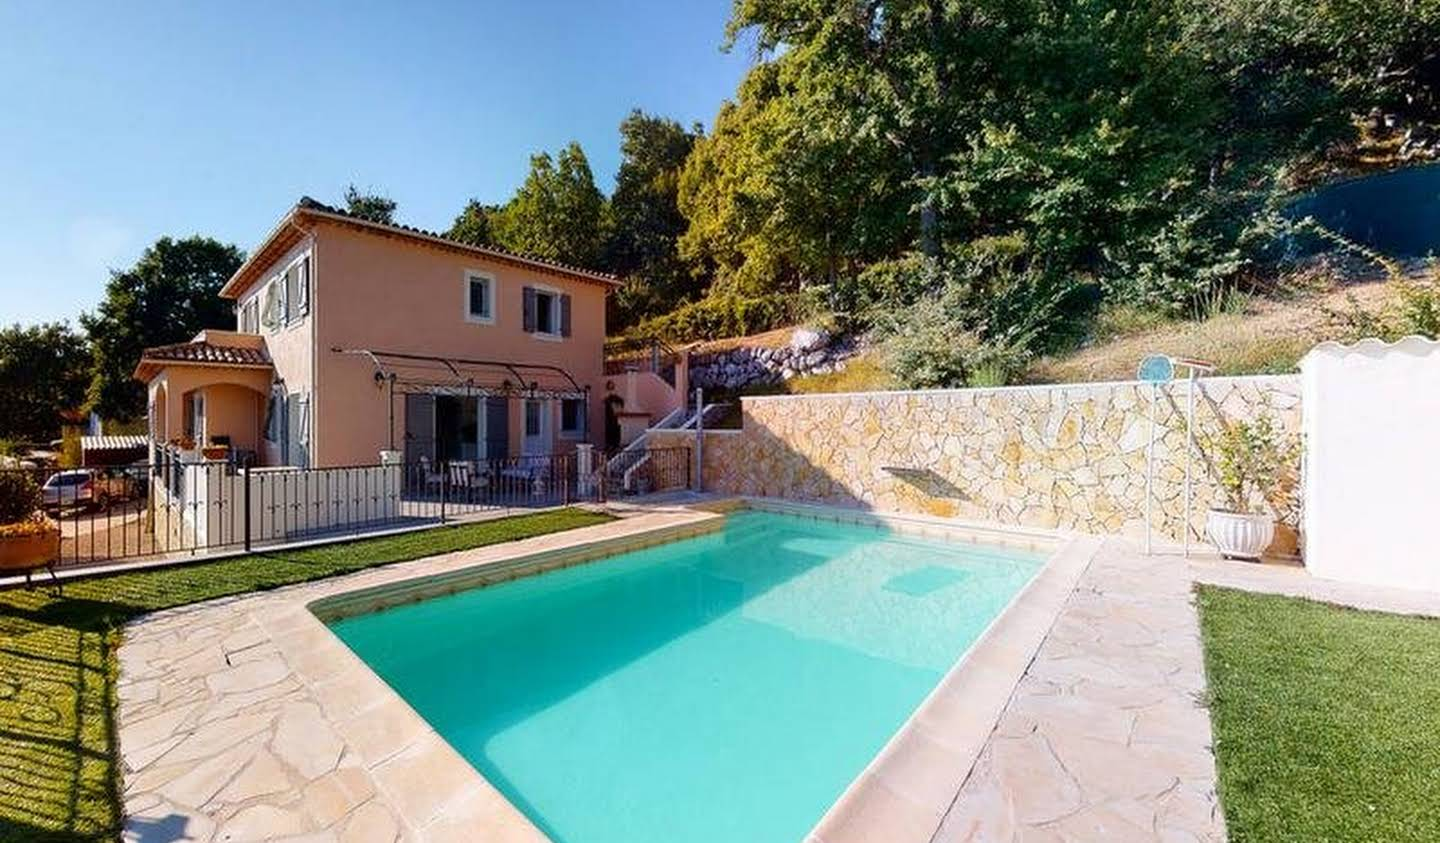 House with pool Saint-Vallier-de-Thiey